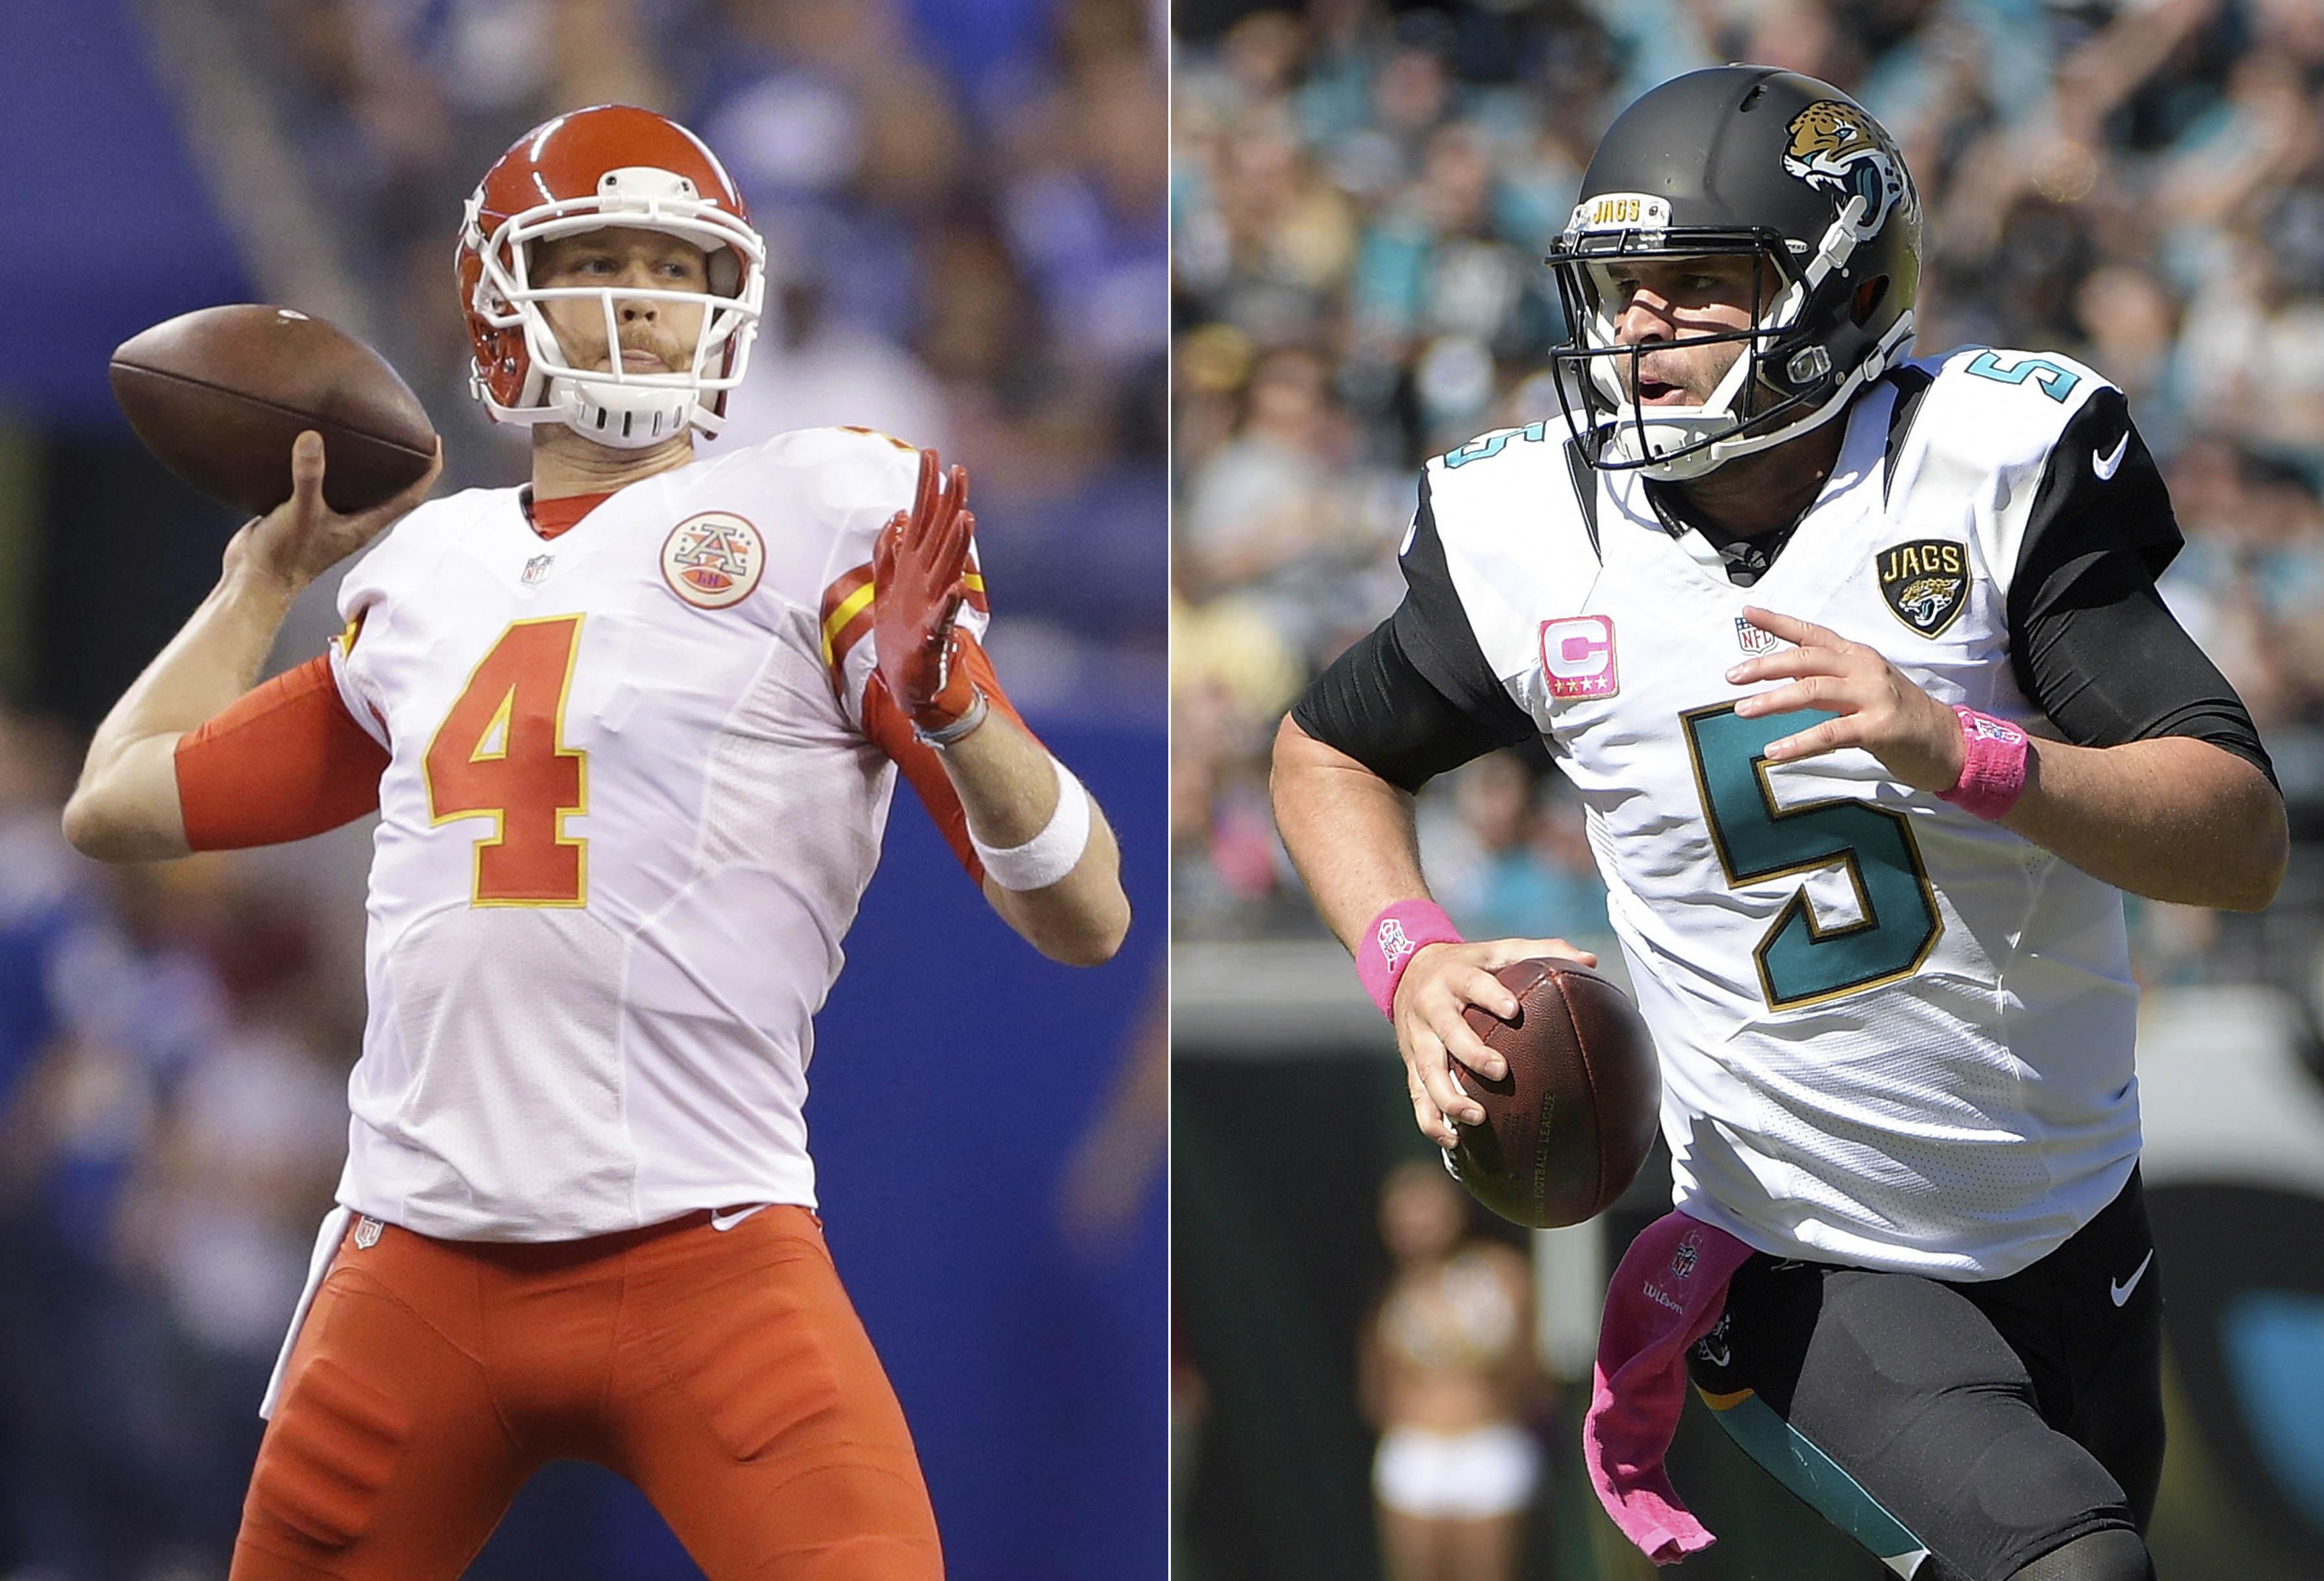 FILE - At left, in an Oct. 30, 2016, file photo, Kansas City Chiefs quarterback Nick Foles throws during the second half of an NFL football game against the Indianapolis Colts, in Indianapolis. At right, in an Oct. 23, 2016, file photo, Jacksonville Jagua